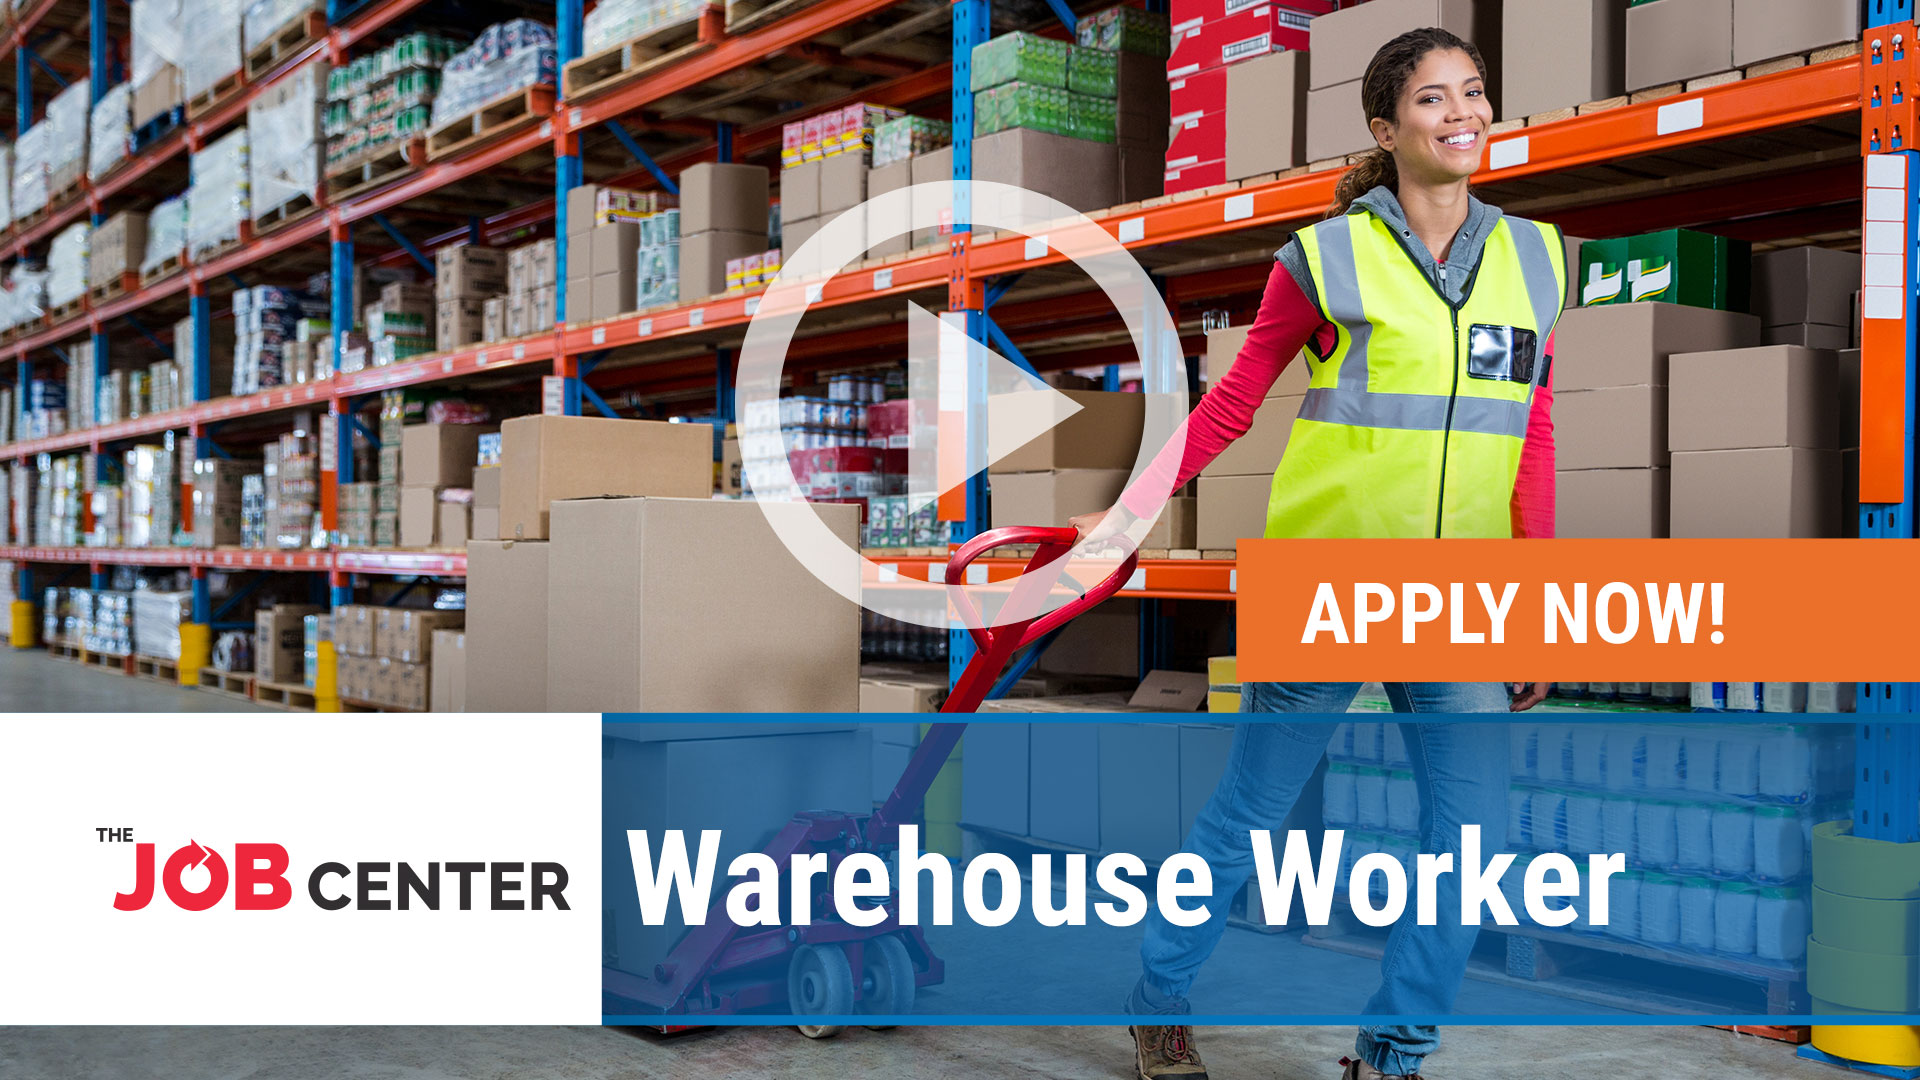 Watch our careers video for available job opening Warehouse Worker in Multiple, Ohio/ Kentucky/ Indiana/ New Hampshire/ Texas